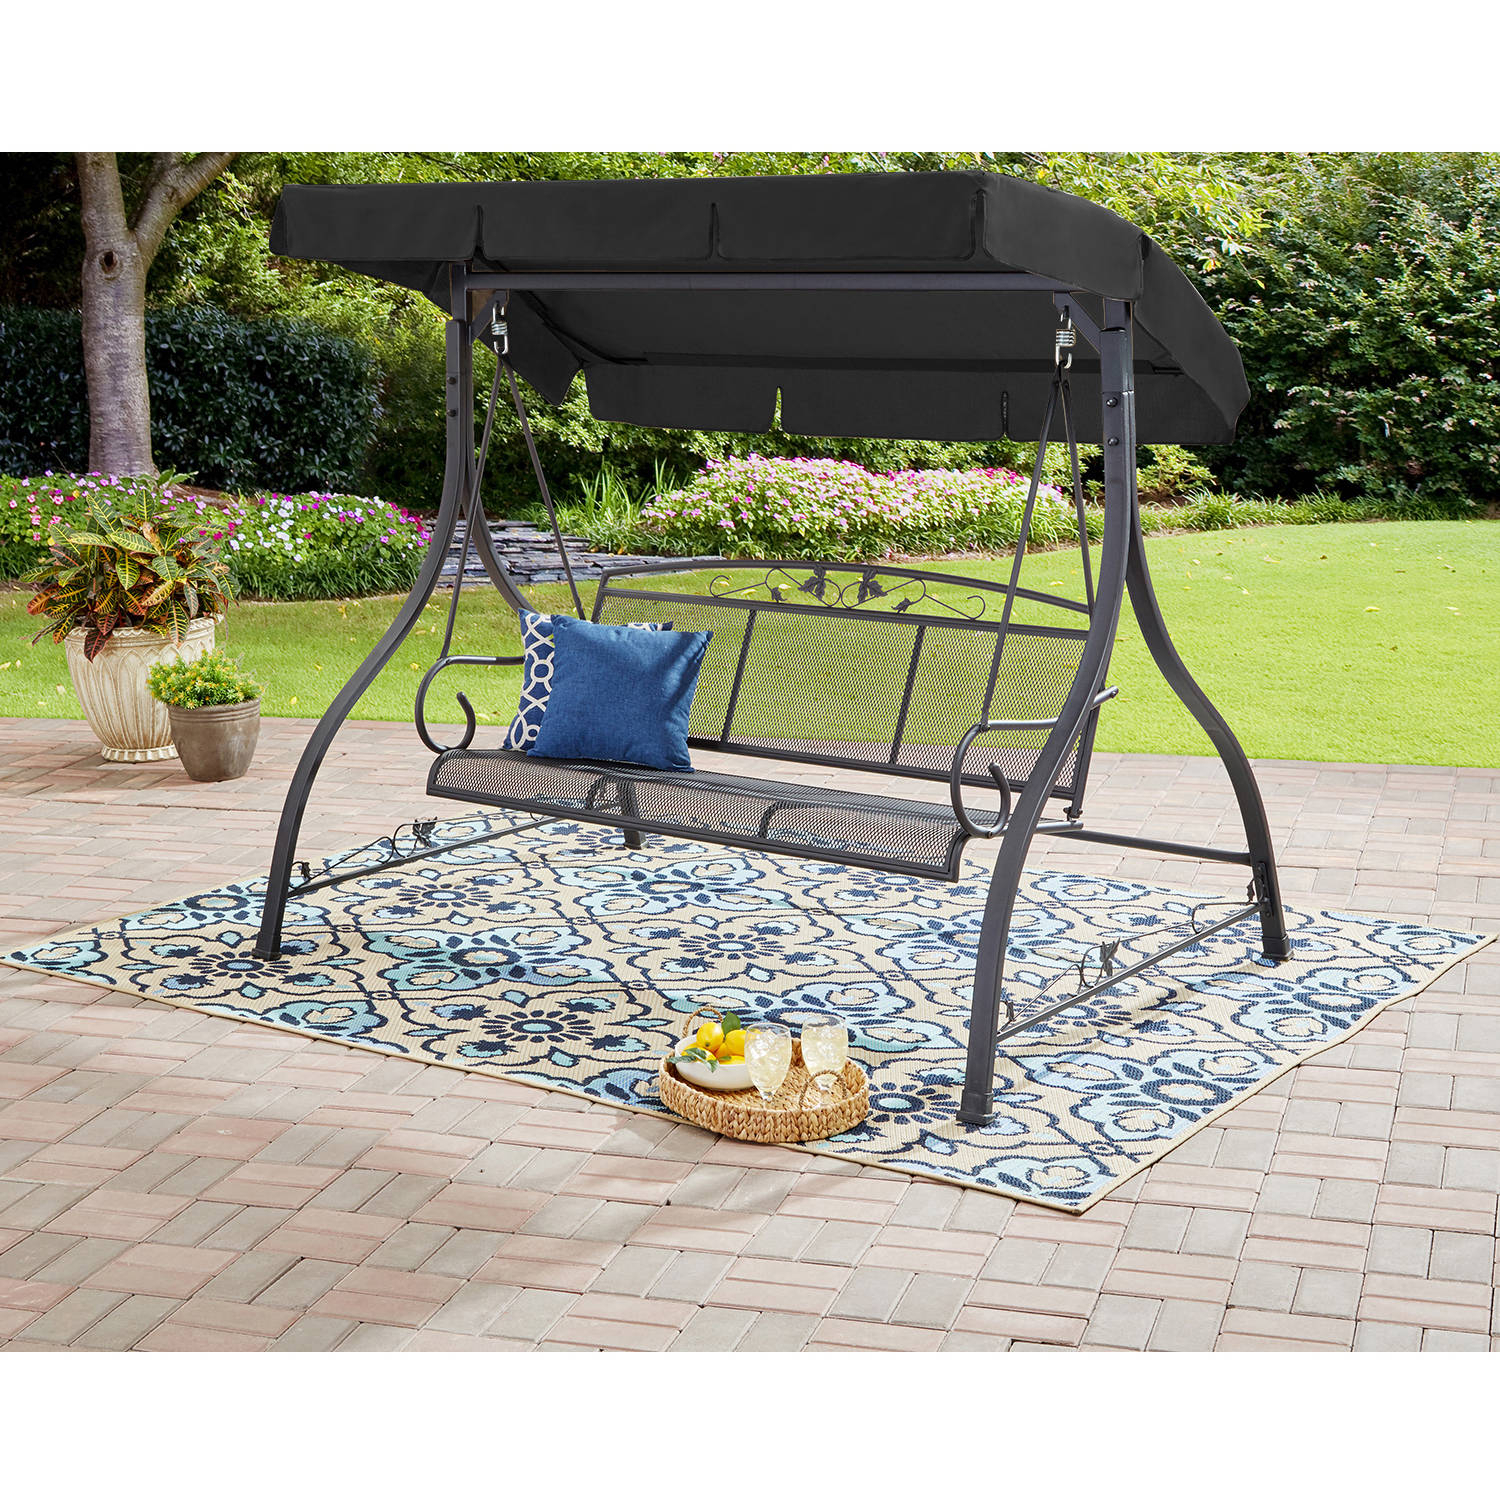 Mainstays Jefferson 3 Person Outdoor Canopy Porch Swing – Walmart Inside Canopy Porch Swings (View 14 of 25)